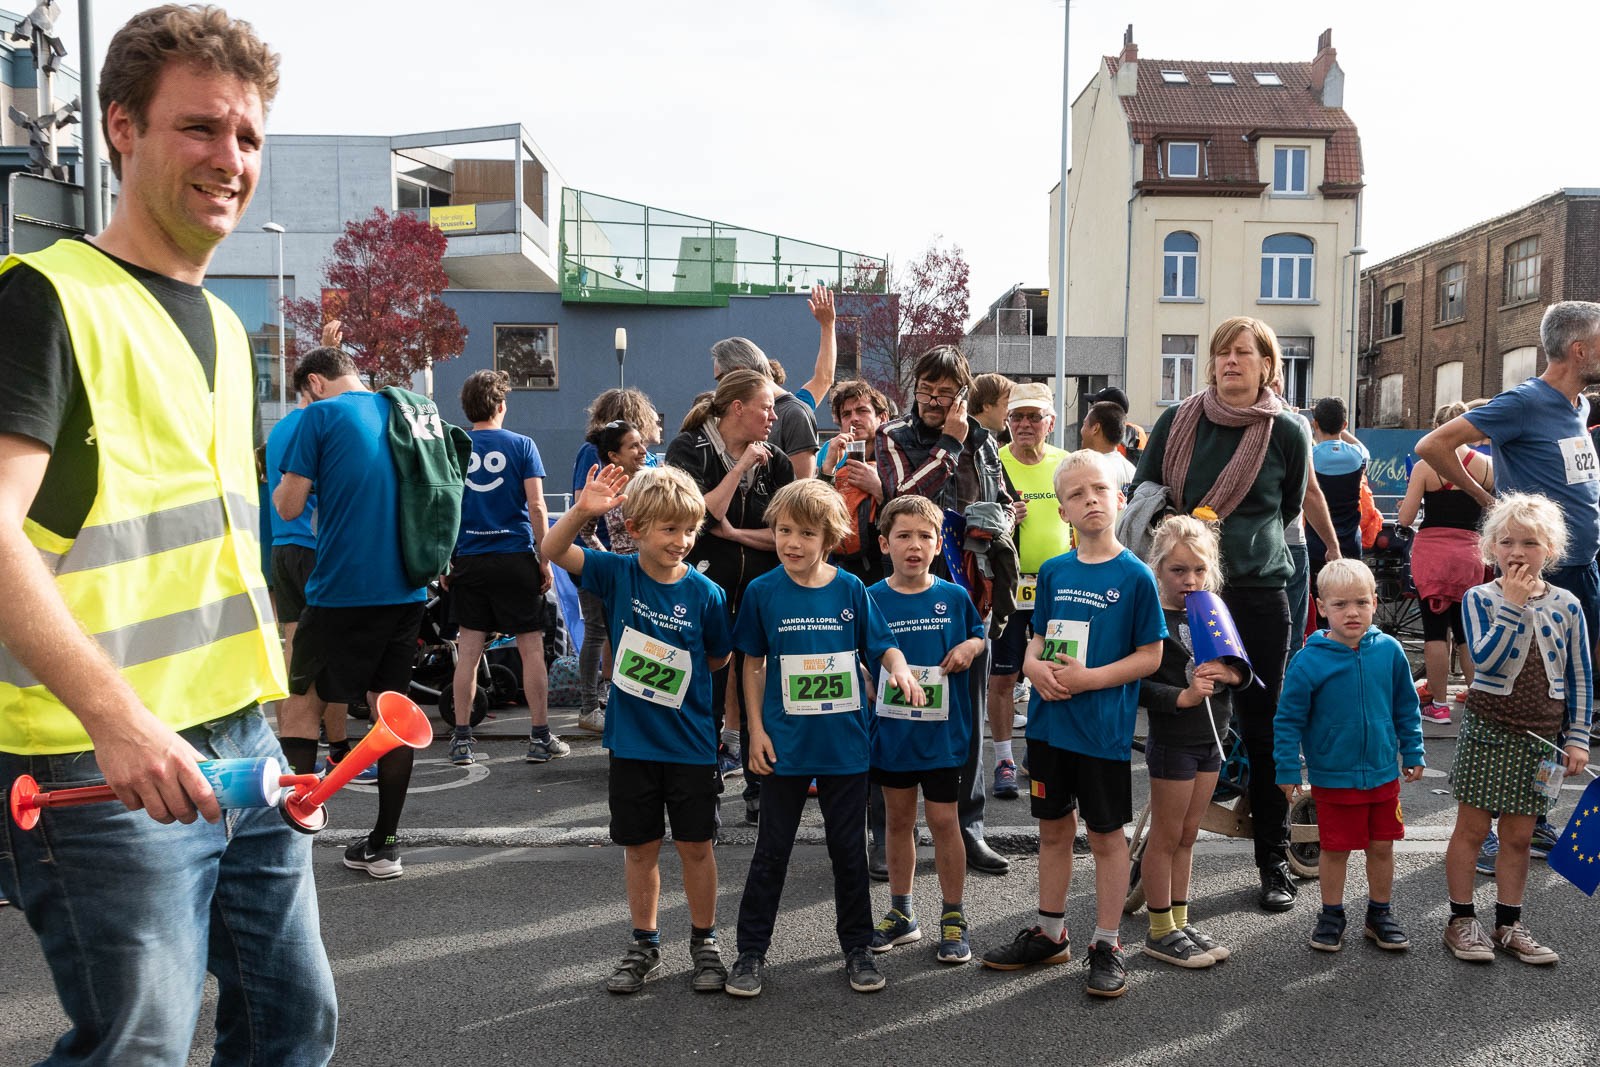 PIC_EVENT_20181020_BRUSSELS-CANAL-RUN_NIKON_005.jpg